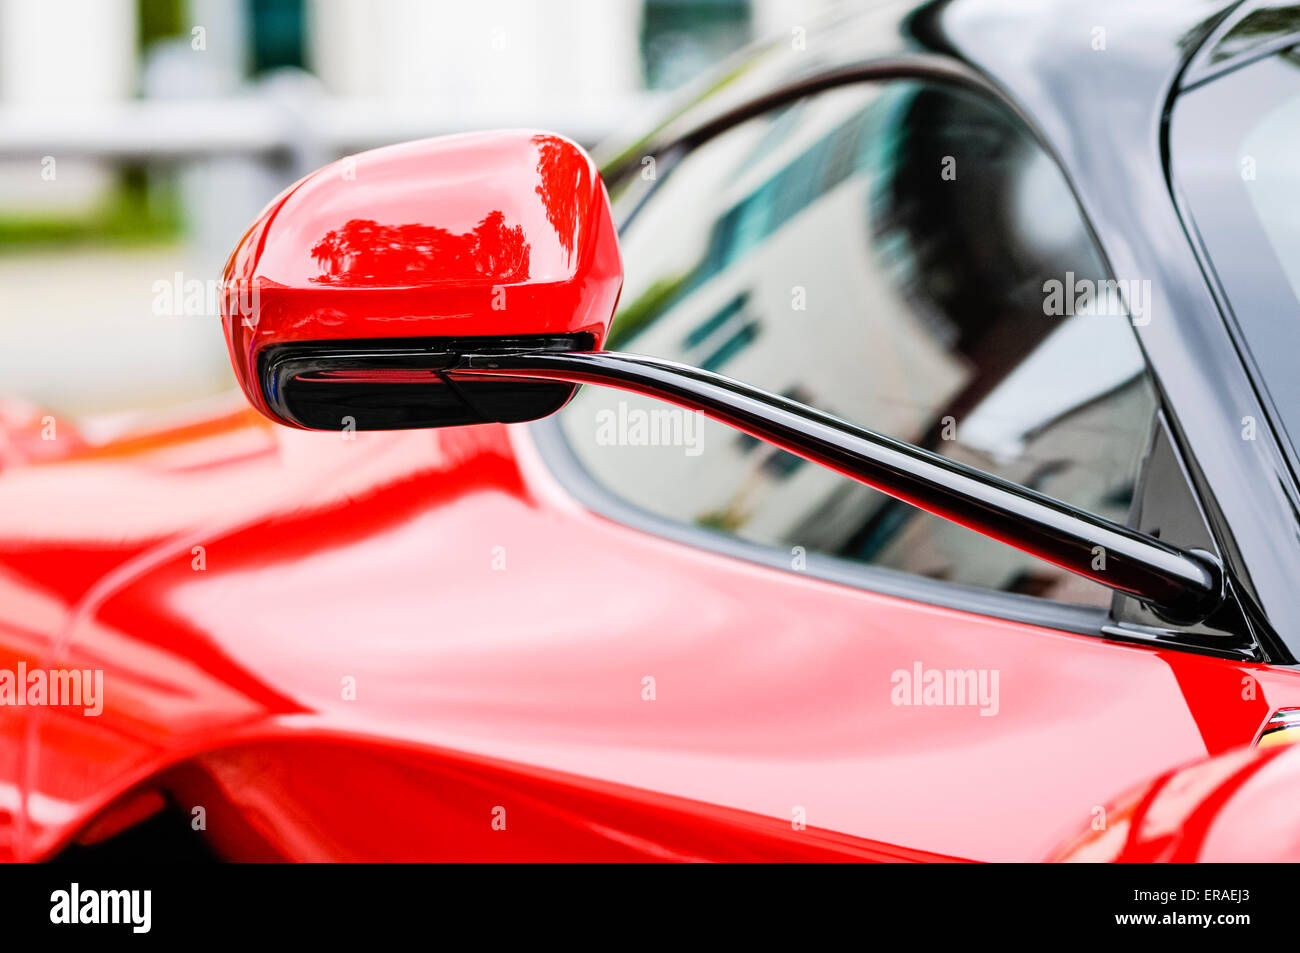 Wing Mirrors Stock Photos & Wing Mirrors Stock Images - Alamy